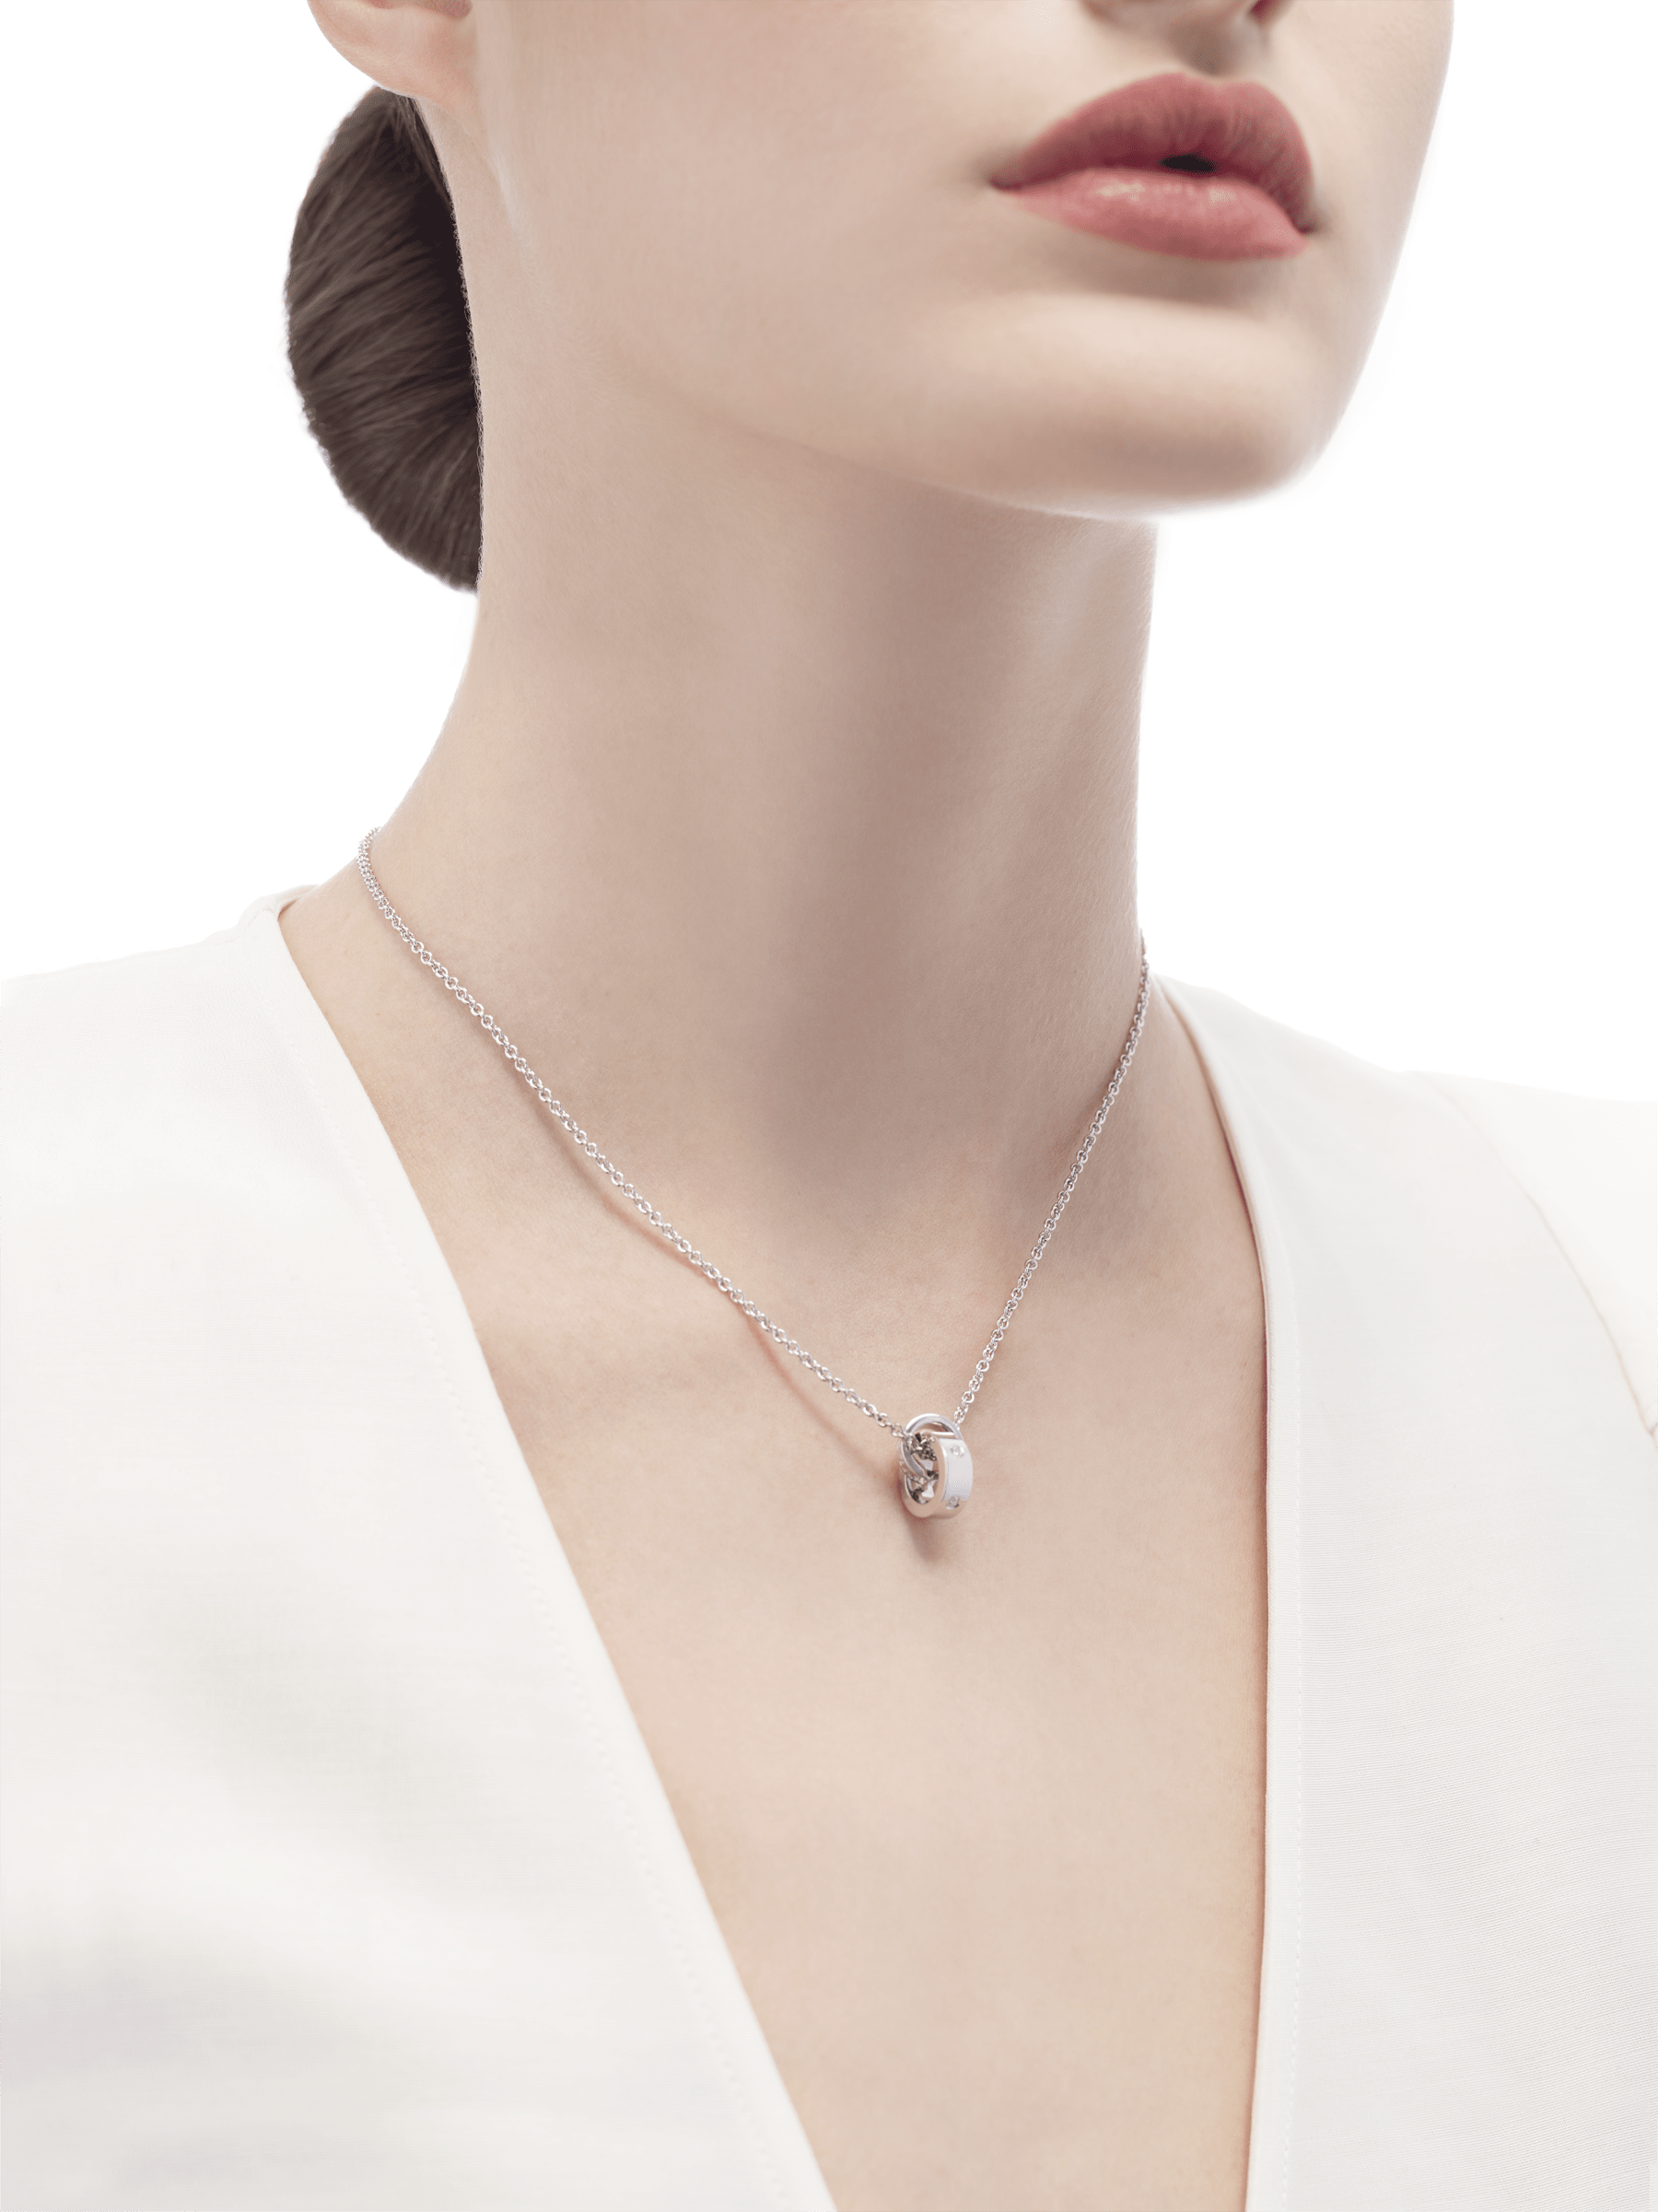 BVLGARI BVLGARI necklace with 18 kt white gold chain and 18 kt white gold pendant set with five diamonds (0.15 ct) 354029 image 4